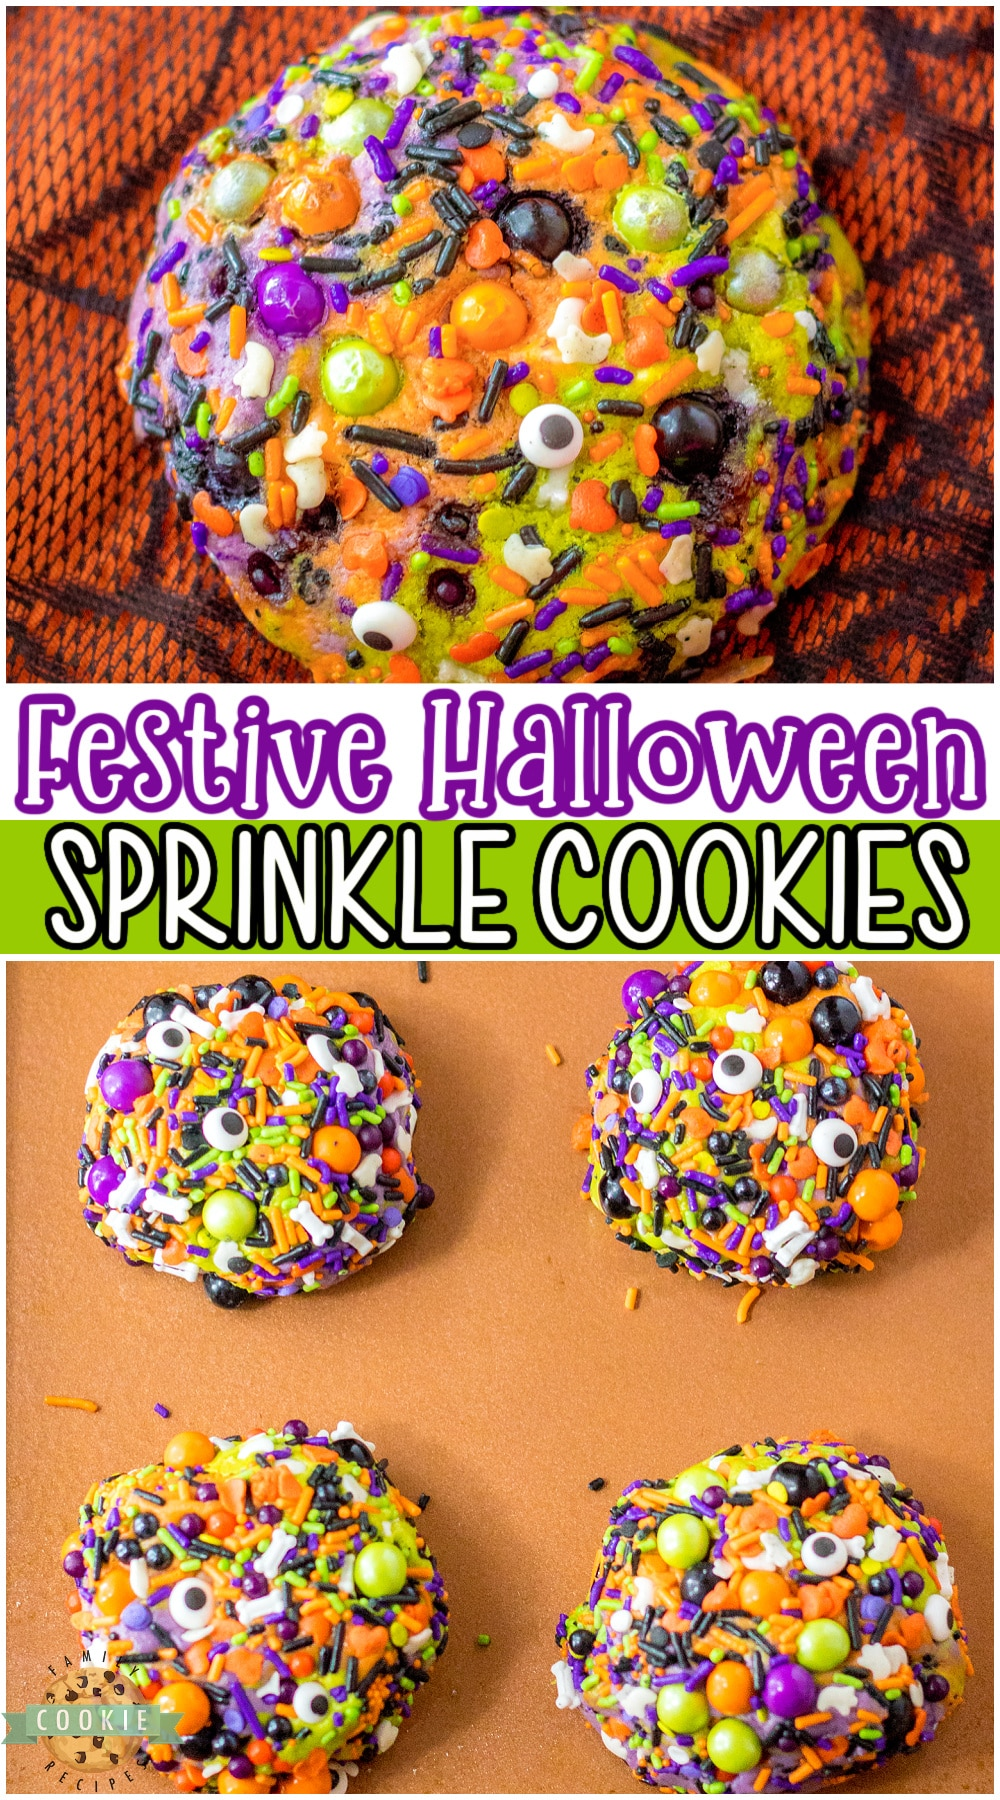 Halloween Sprinkle Cookies are big & buttery brown sugar cookies dyed Halloween colors, then rolled in festive sprinkles! Fun & tasty festive holiday cookies that everyone loves! #Halloween #cookies #bigfatcookies #sprinkles #easyrecipe from FAMILY COOKIE RECIPES via @buttergirls